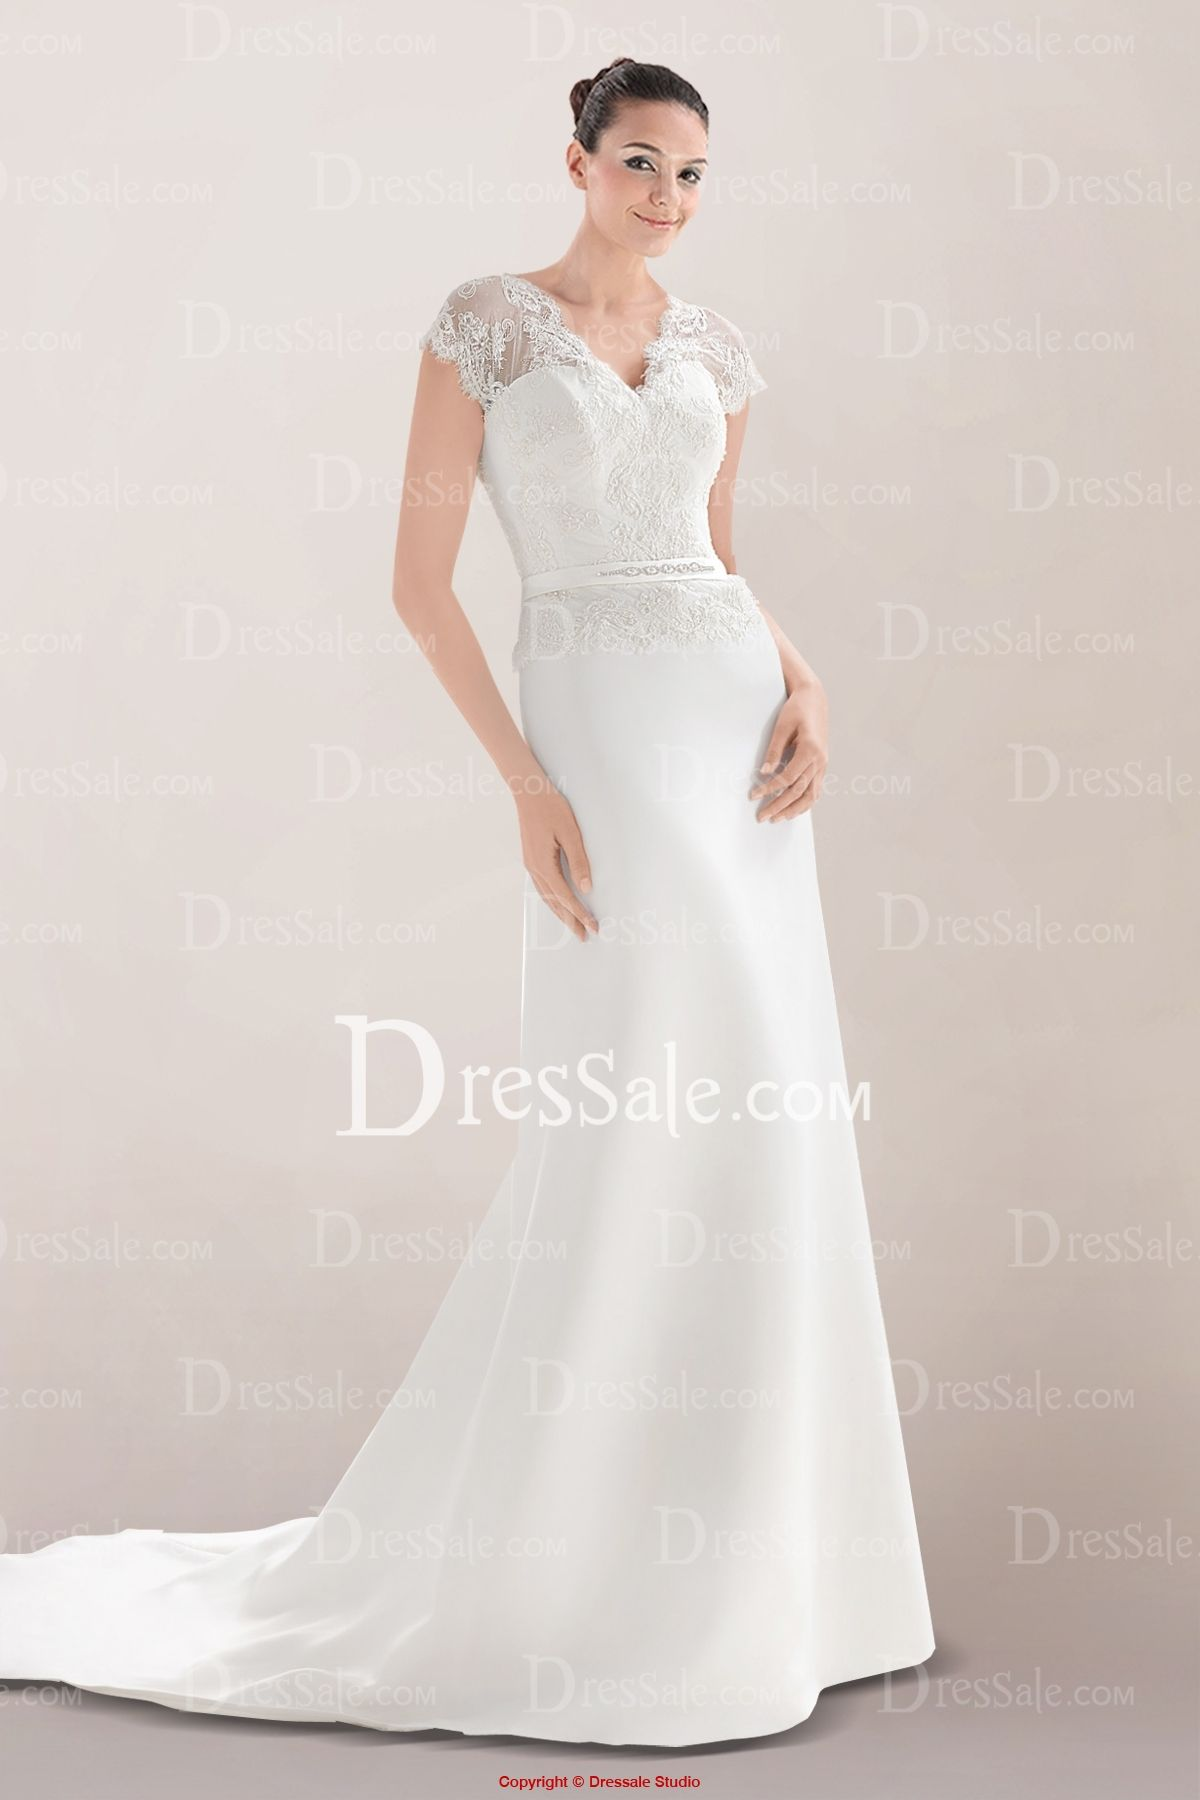 Elegant aline wedding dress with delicate lace bodice and plunging